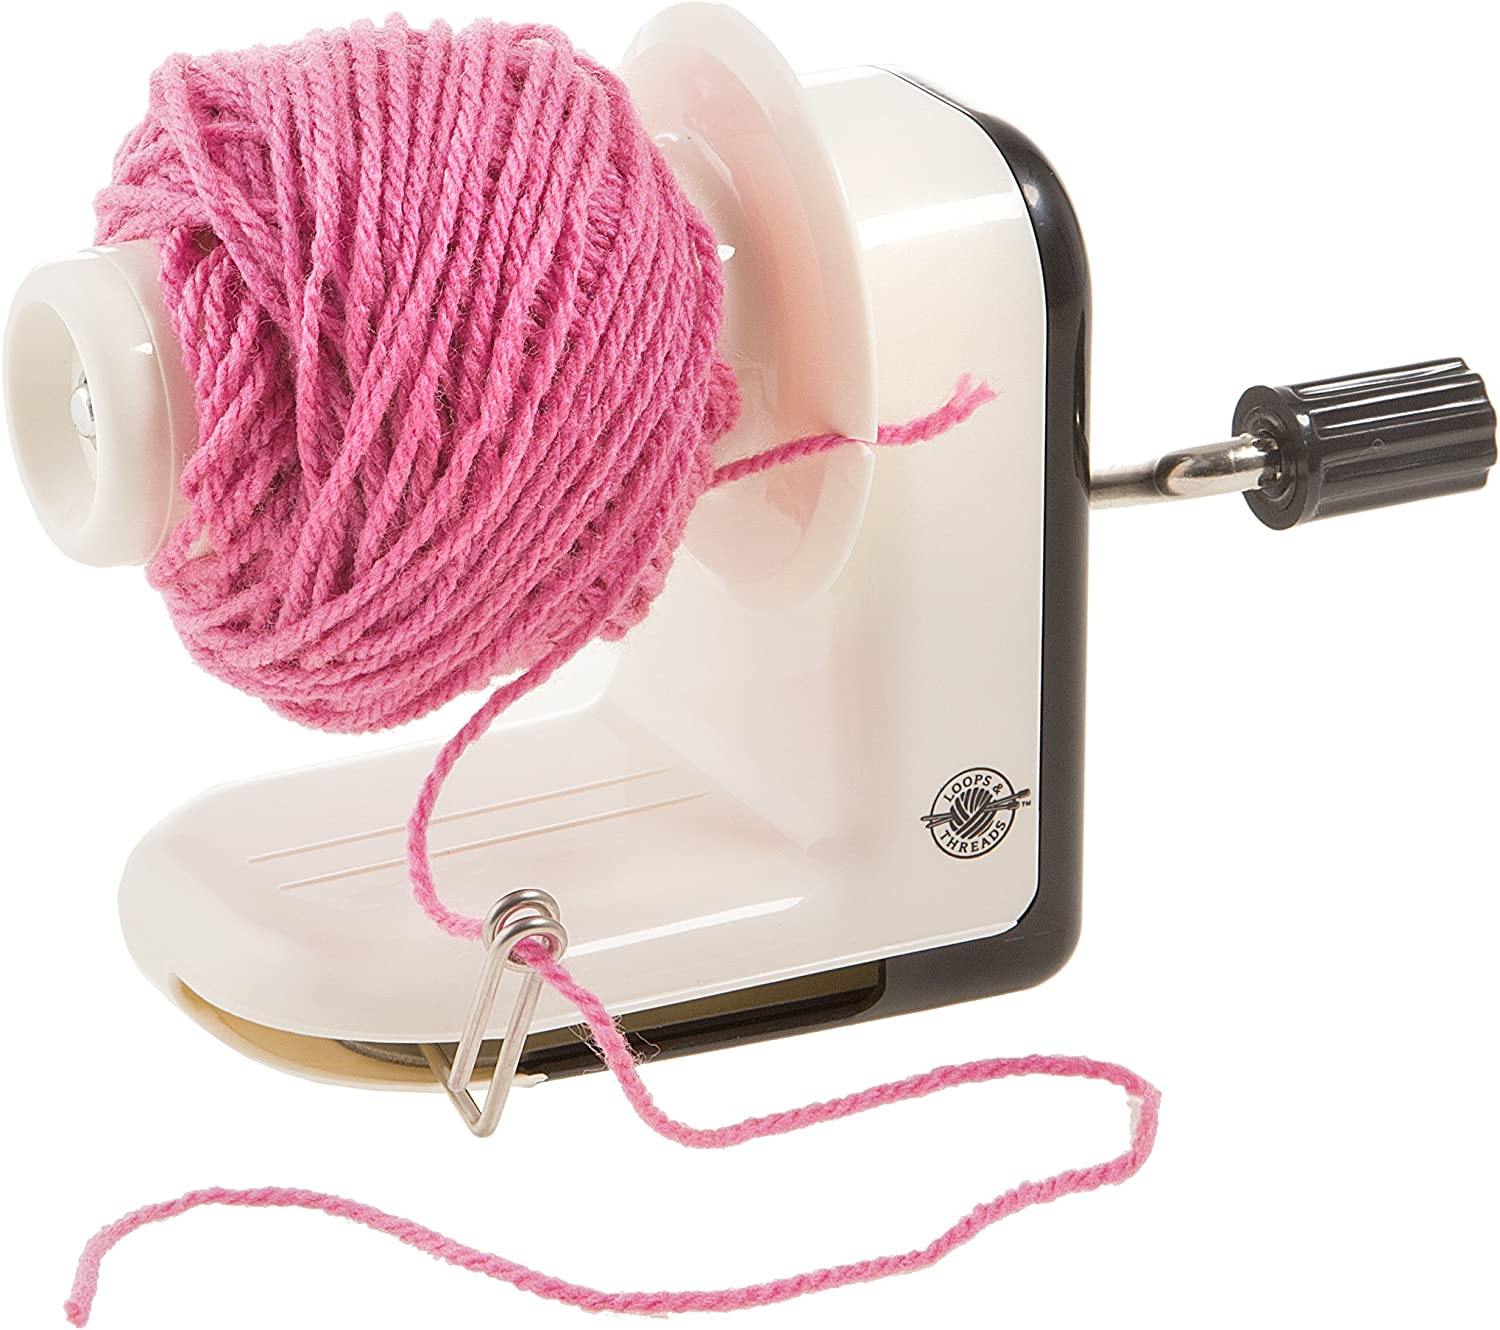 The small and compact Darice Yarn Winder